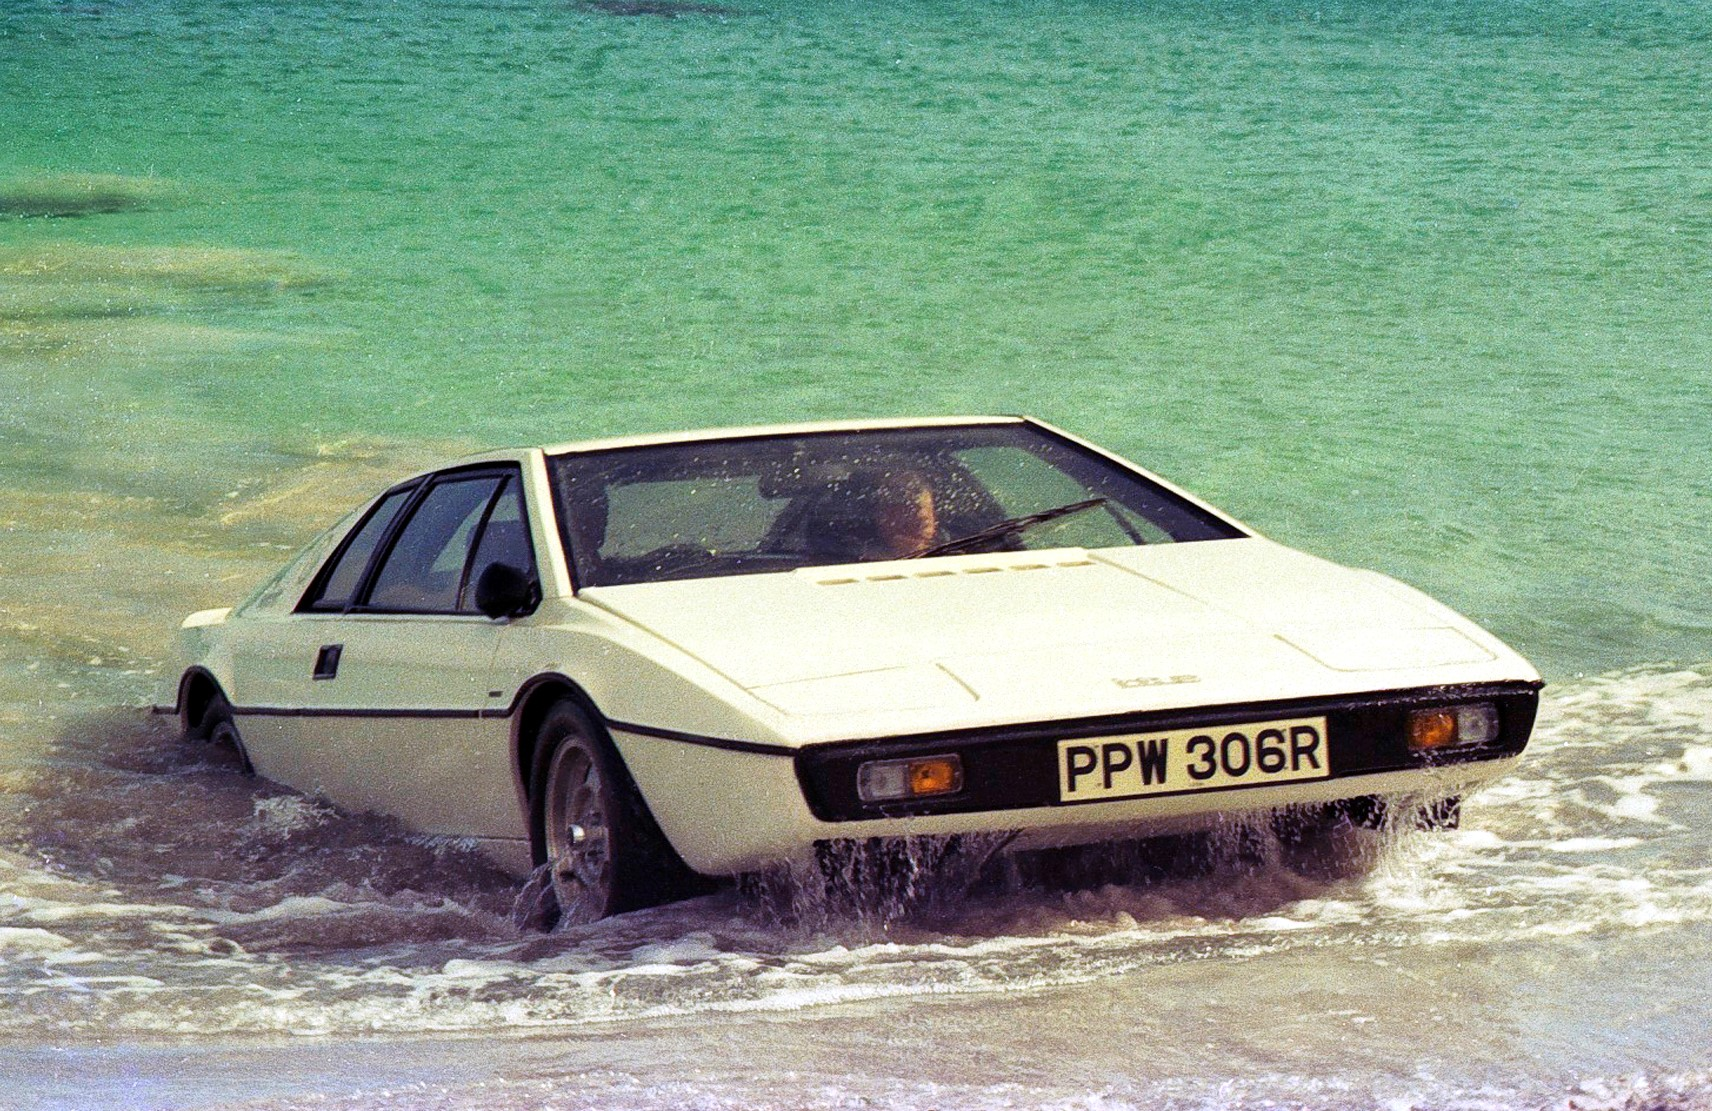 http://trackworthy.com/wp-content/uploads/2017/02/The-Spy-Who-Loved-Me-Lotus-Esprit-S1.jpg